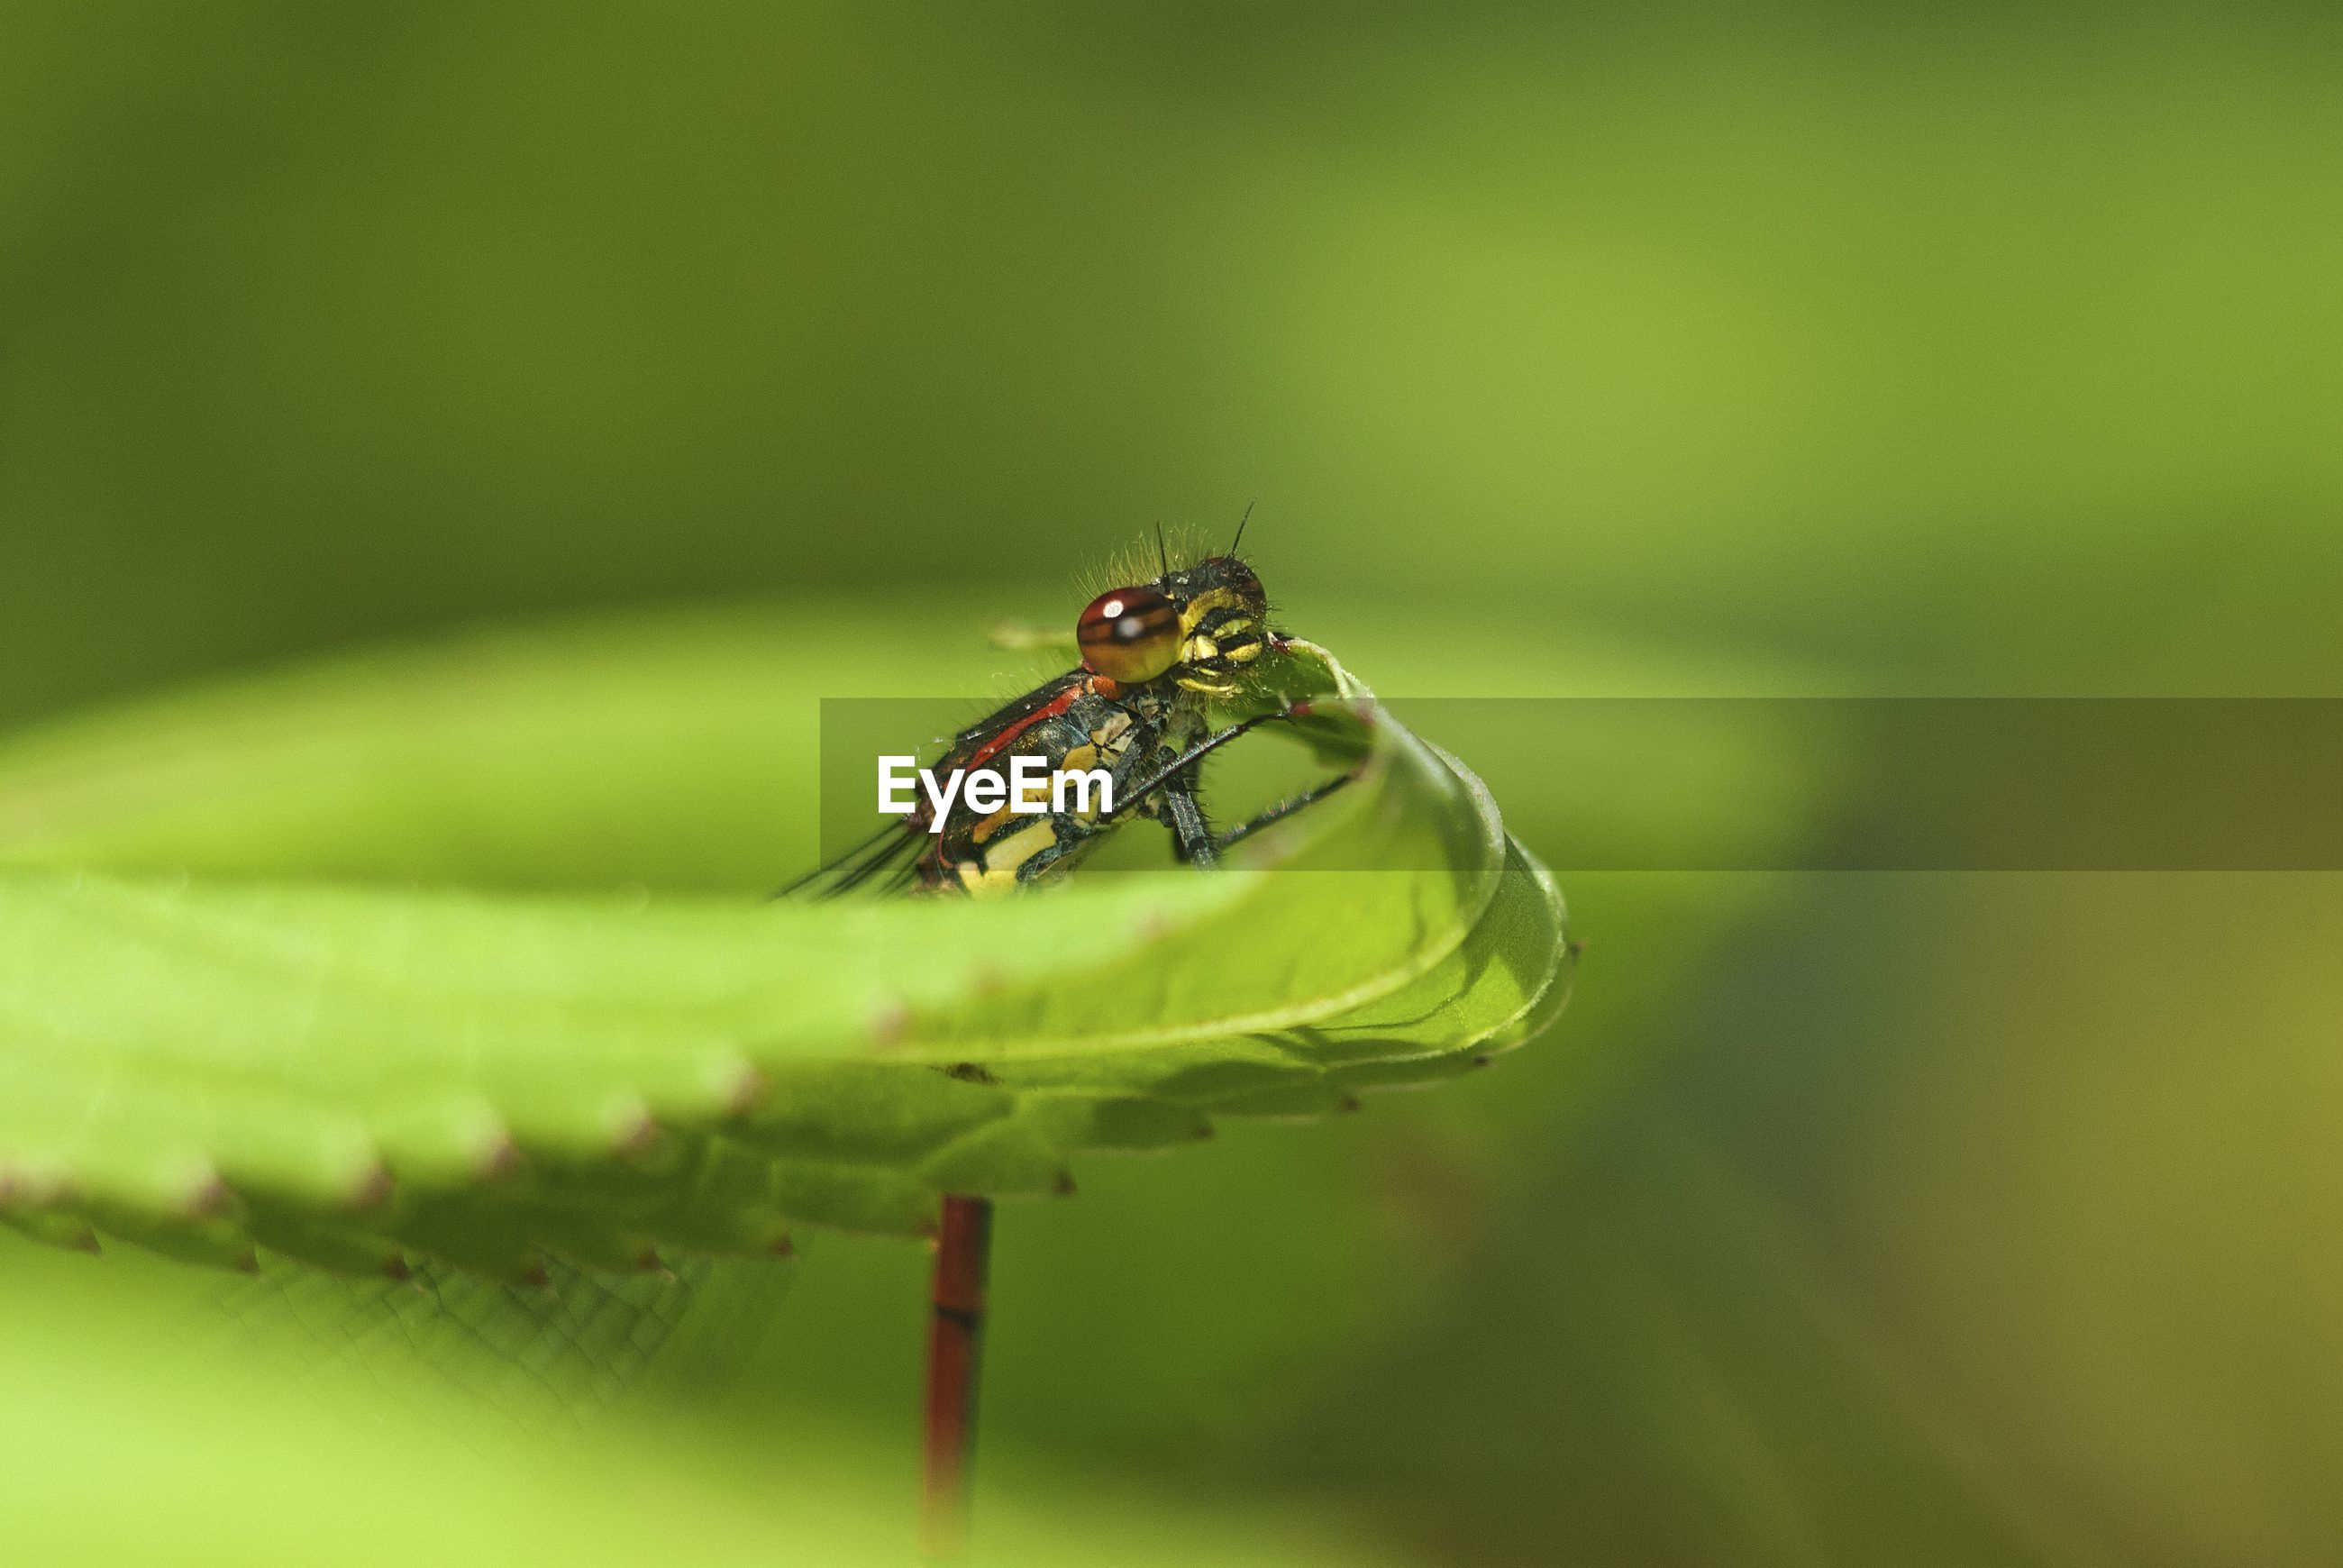 Close-up of insect on green leaf